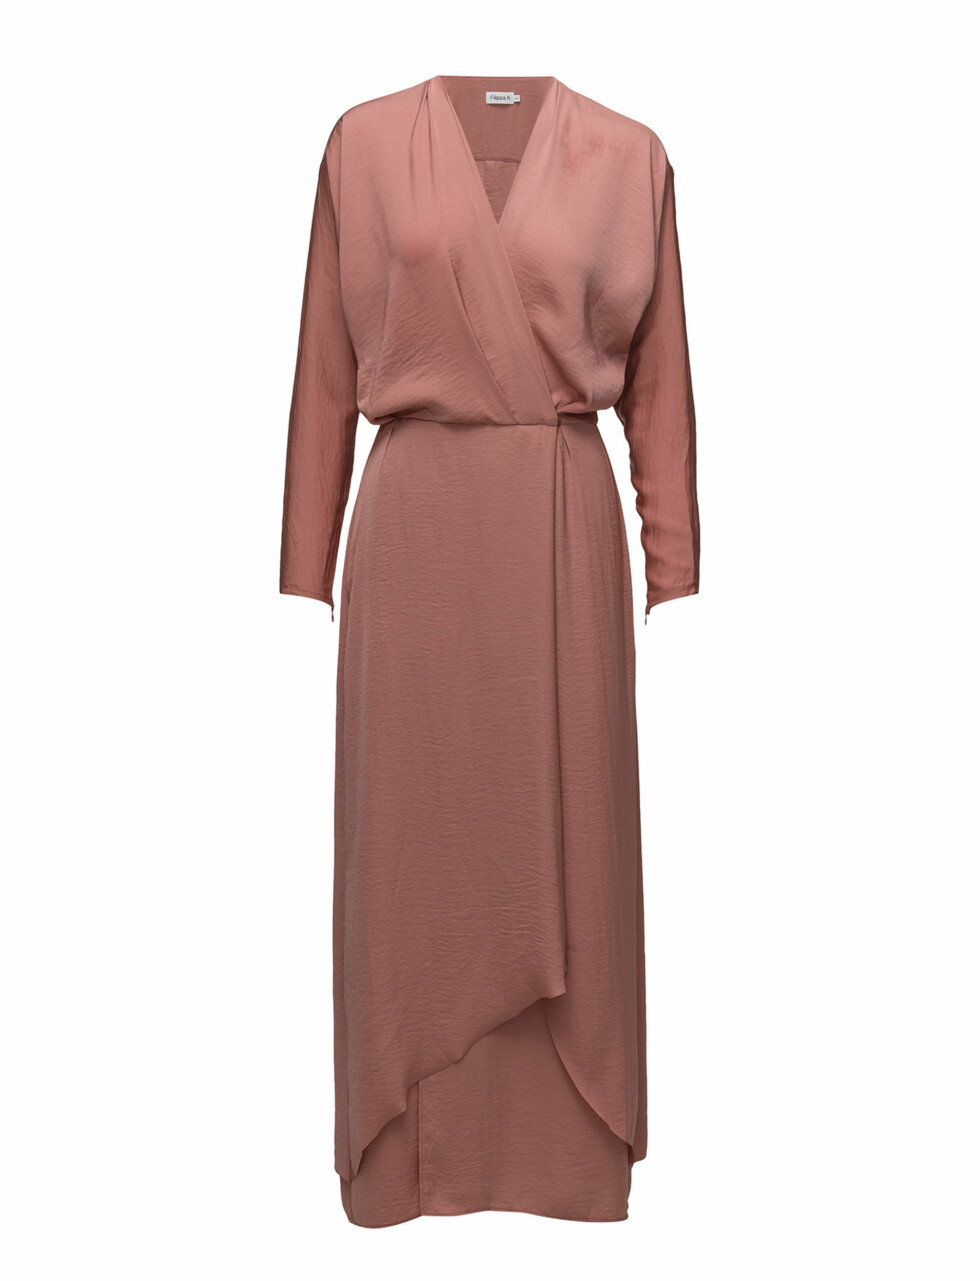 Kjole fra Filippa K |2900,-| https://www.boozt.com/no/no/filippa-k/drapey-wrap-dress_16653703/16653715?navId=67453&group=listing&position=1000000